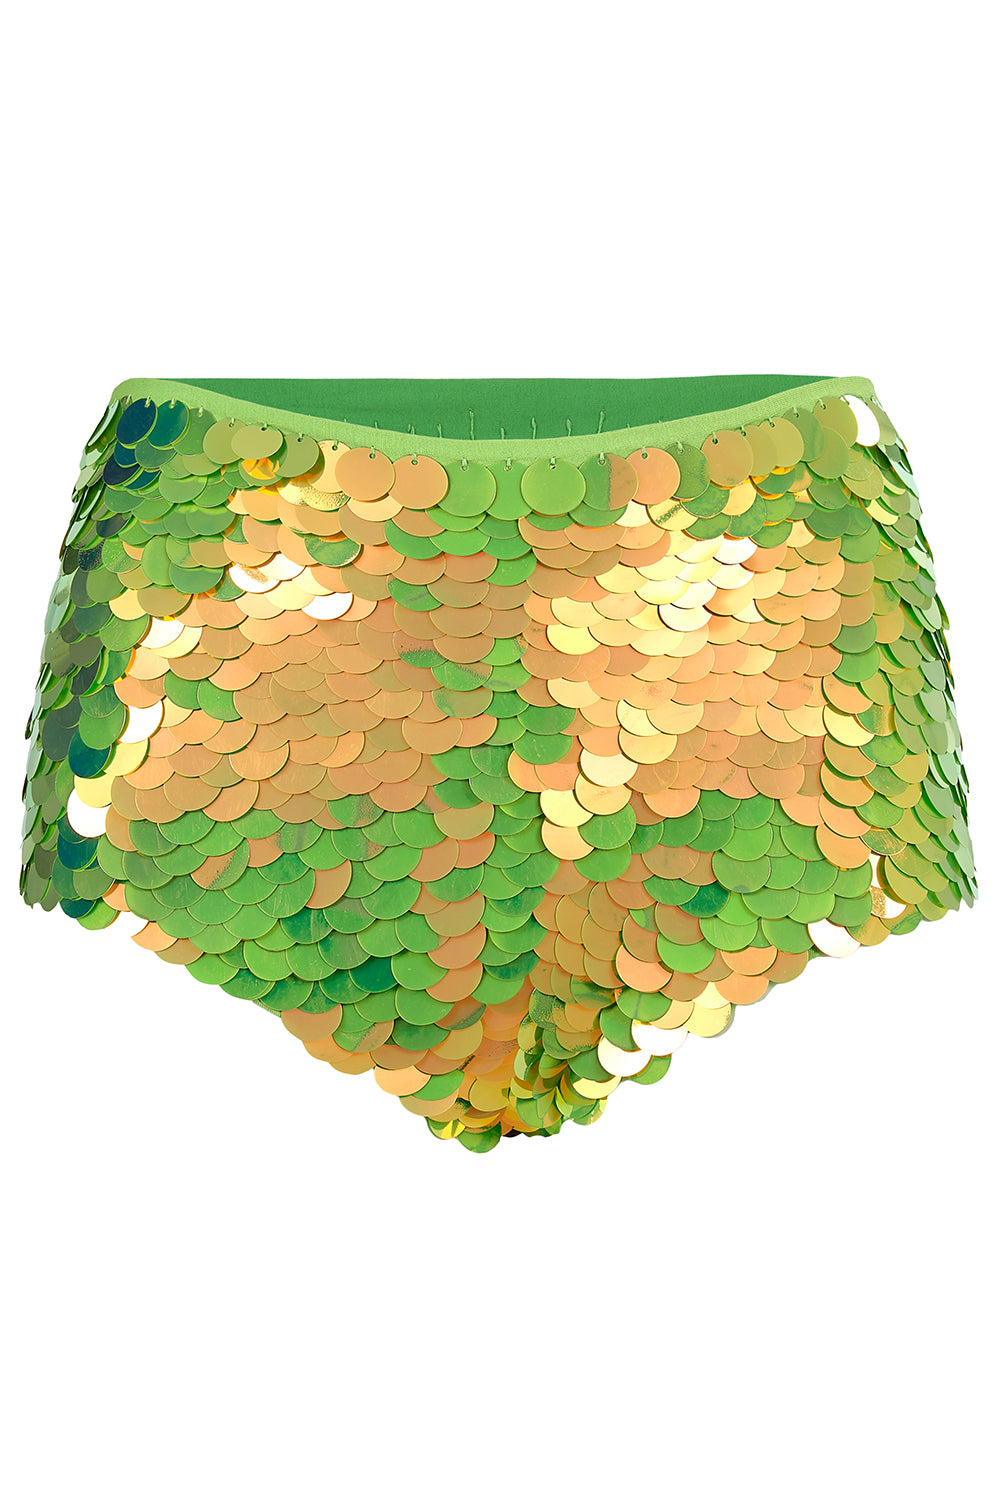 rosa bloom angelica gigi hot pants in lime green festival sequins